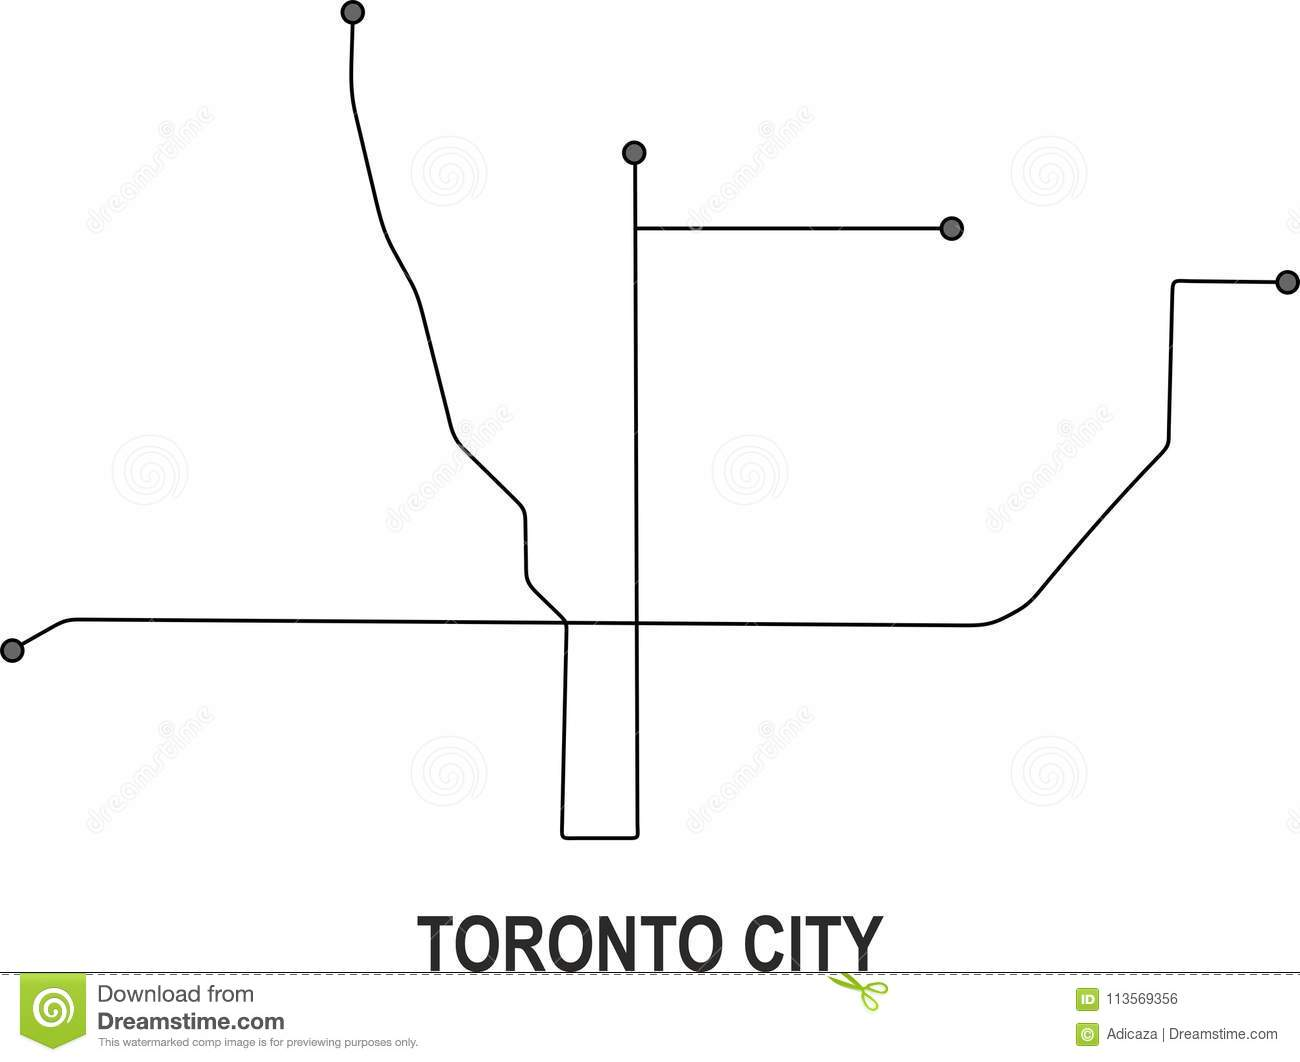 Toronto Subway Map.Toronto City Map Stock Vector Illustration Of Available 113569356